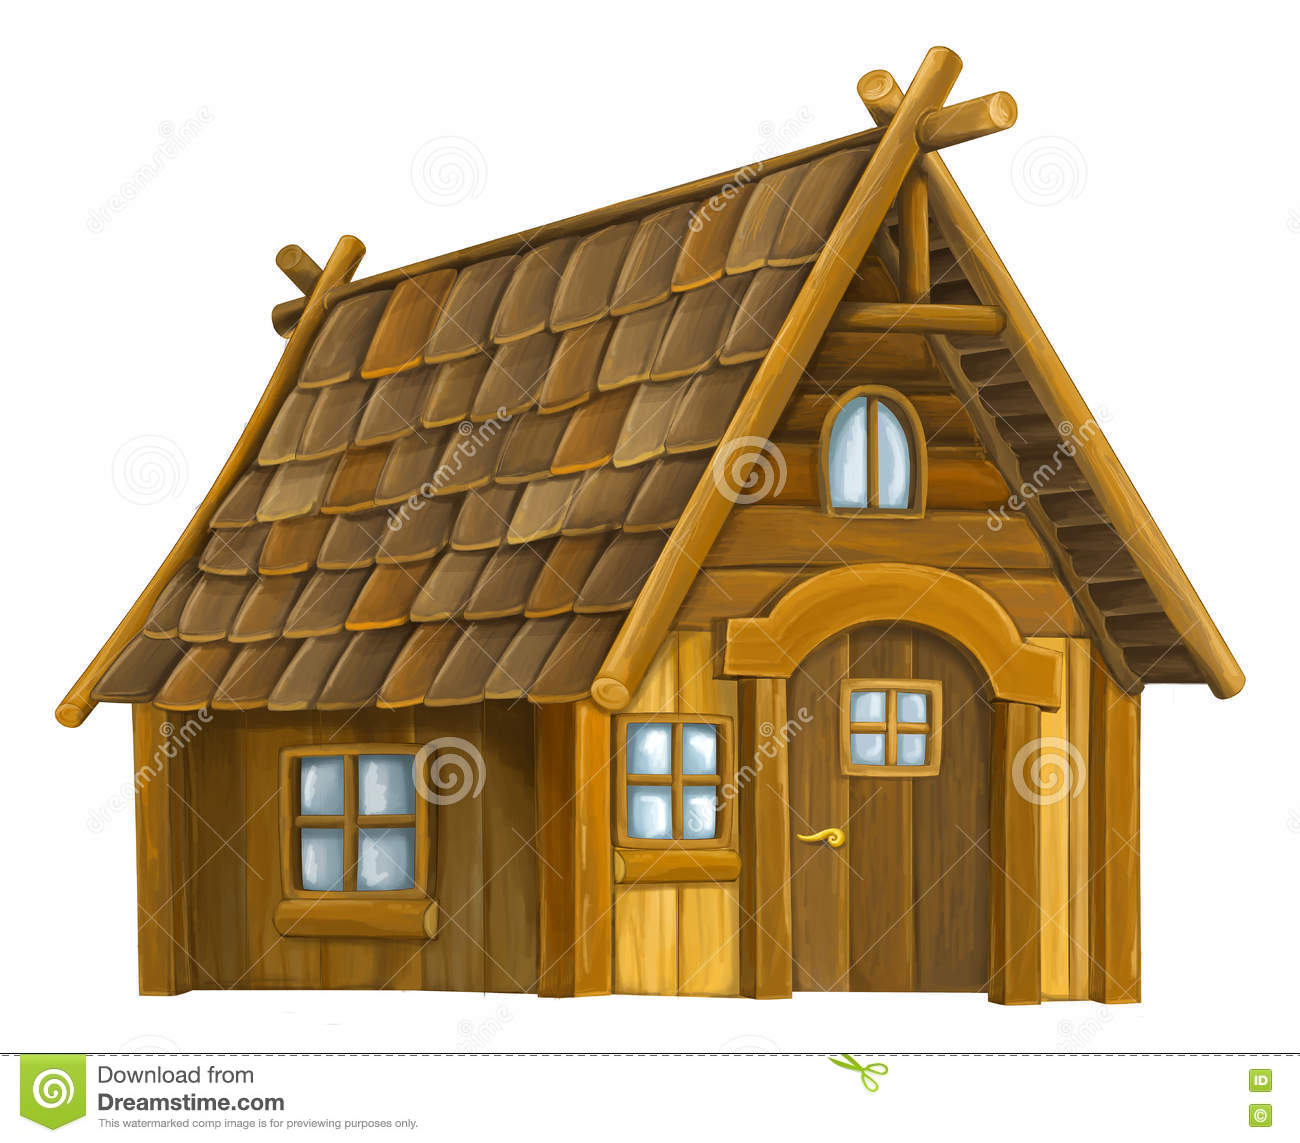 Albania Mania together with Interior Door Makeover Projects likewise Classic American House Traditional Exterior Atlanta as well Small 4 Bedroom Floor Plans together with Floating Glass Shelves Kitchen Contemporary With Arm Chair Blinds Cabi s. on traditional farmhouse